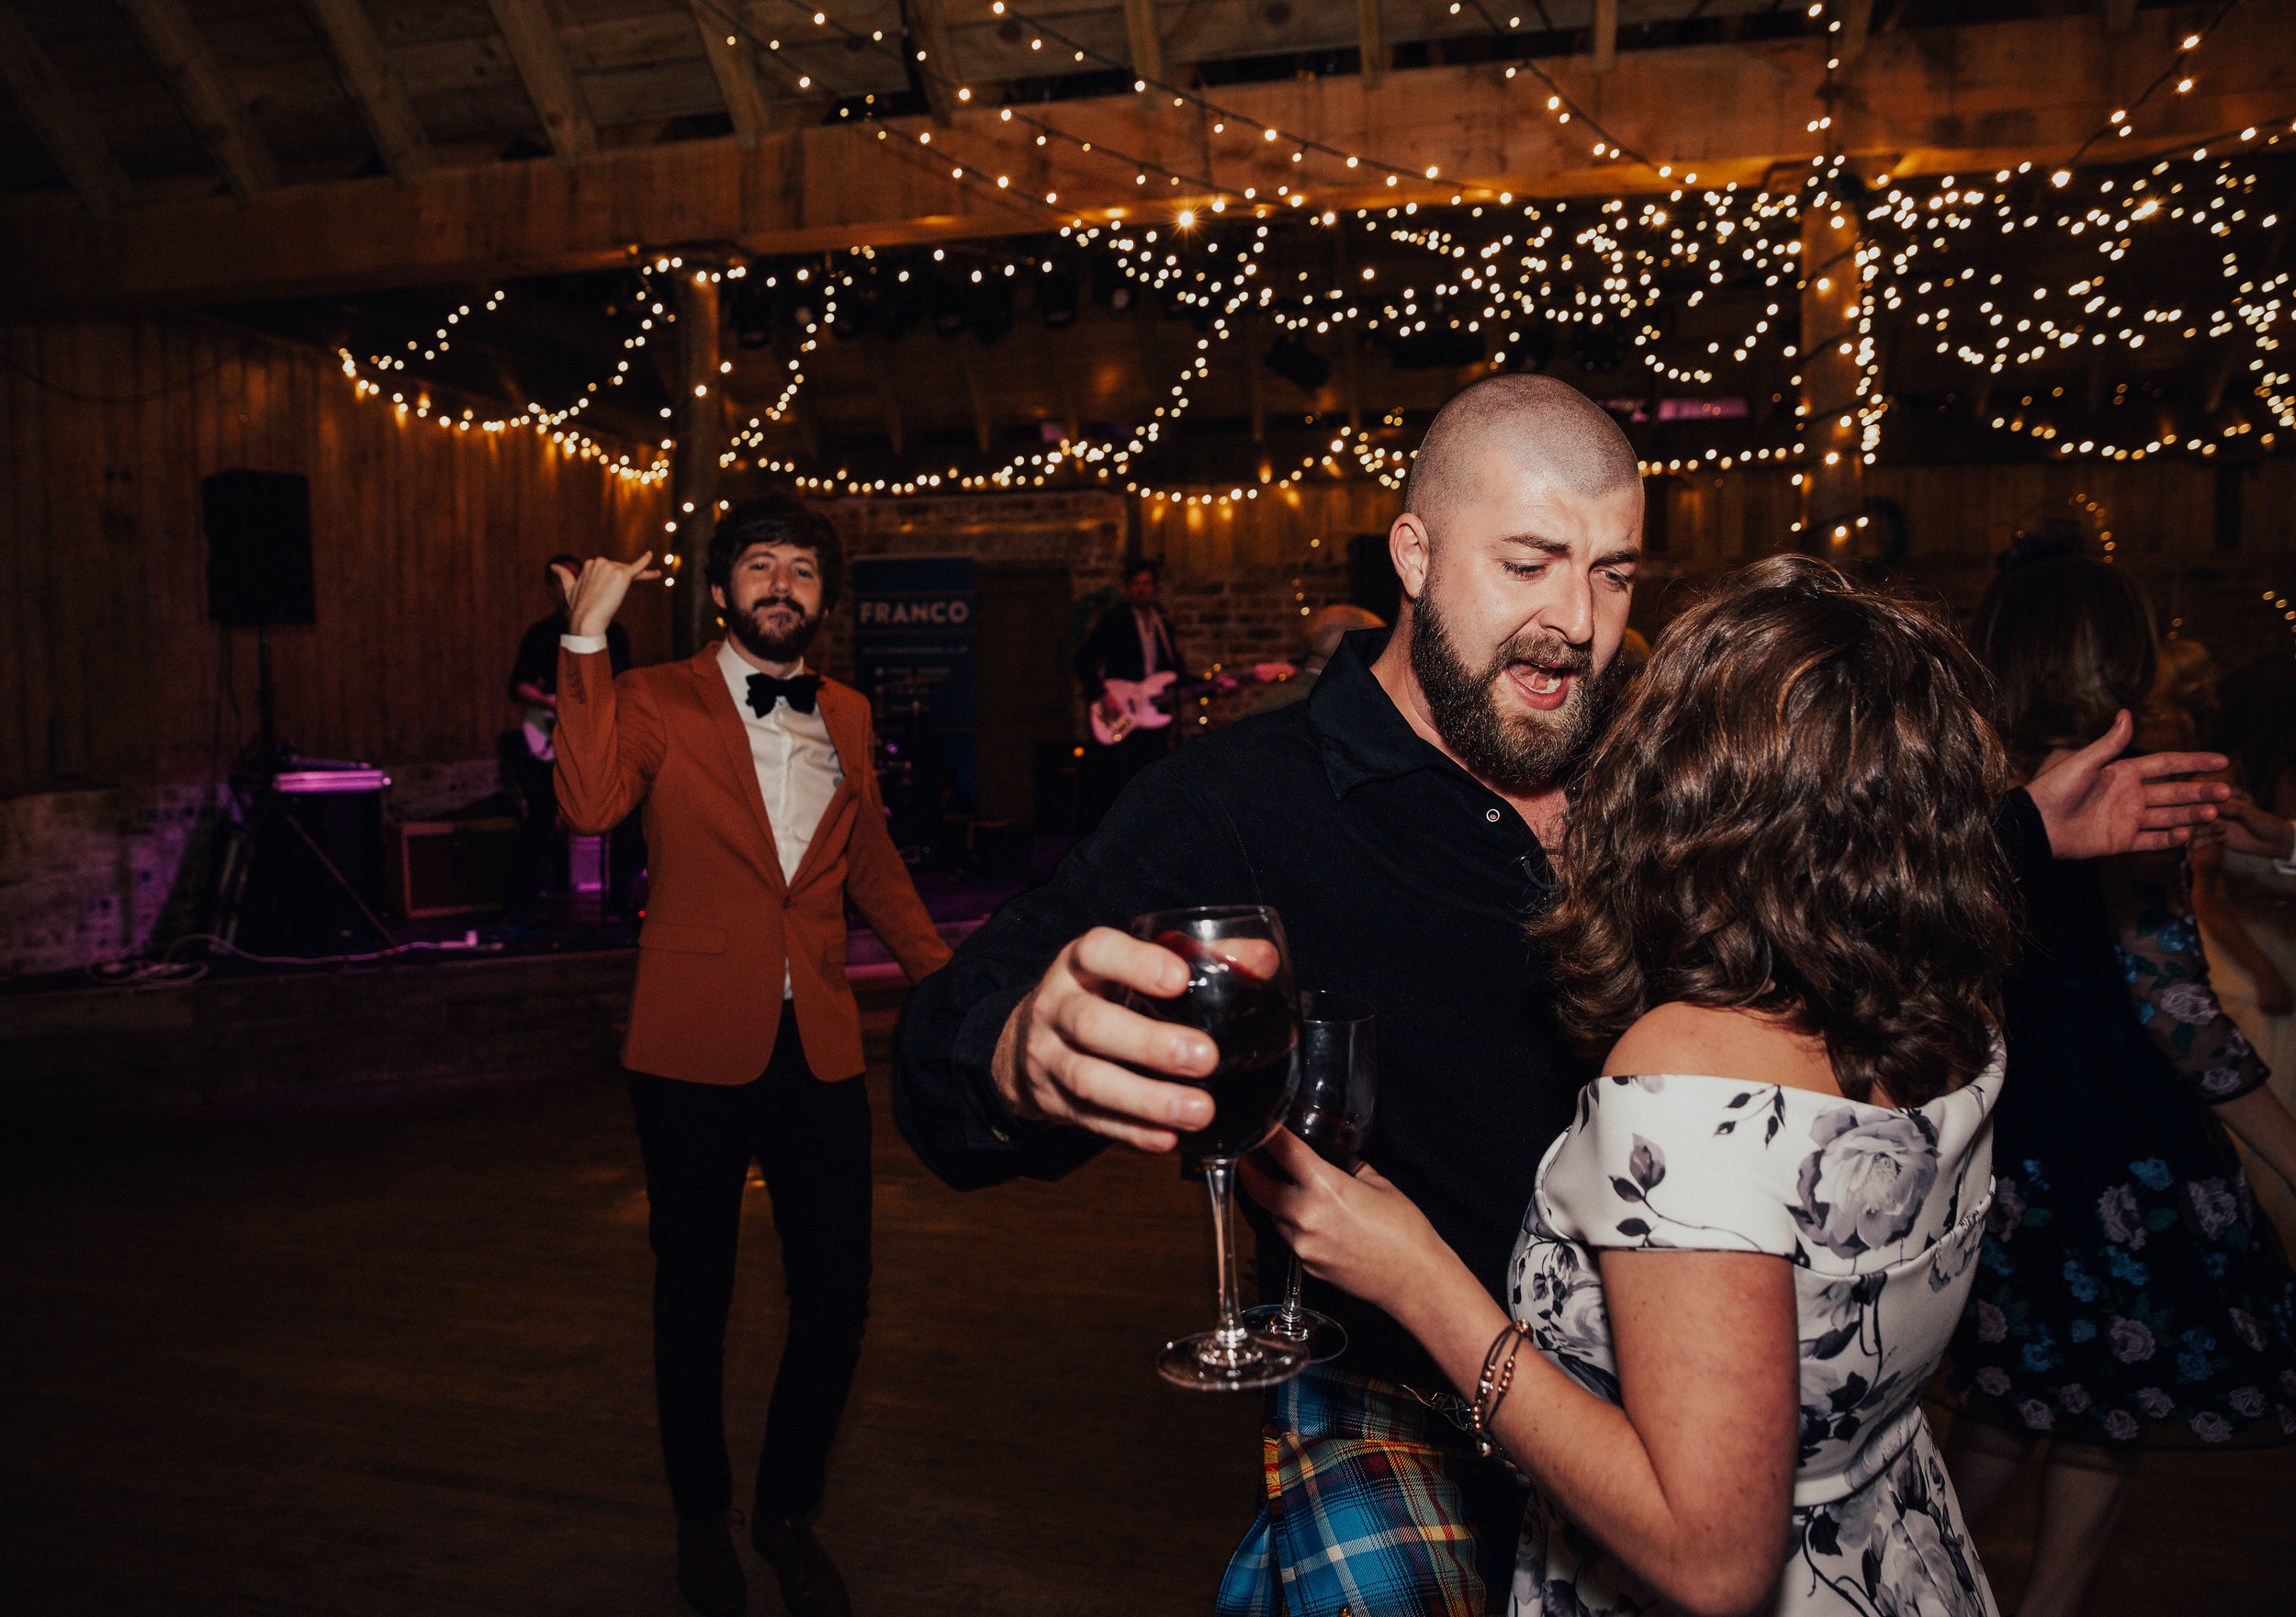 BYRE_AT_INCHYRA_WEDDING_PHOTOGRAPHER_PJ_PHILLIPS_PHOTOGRAPHY_KAYLEIGH_ANDREW_163.jpg